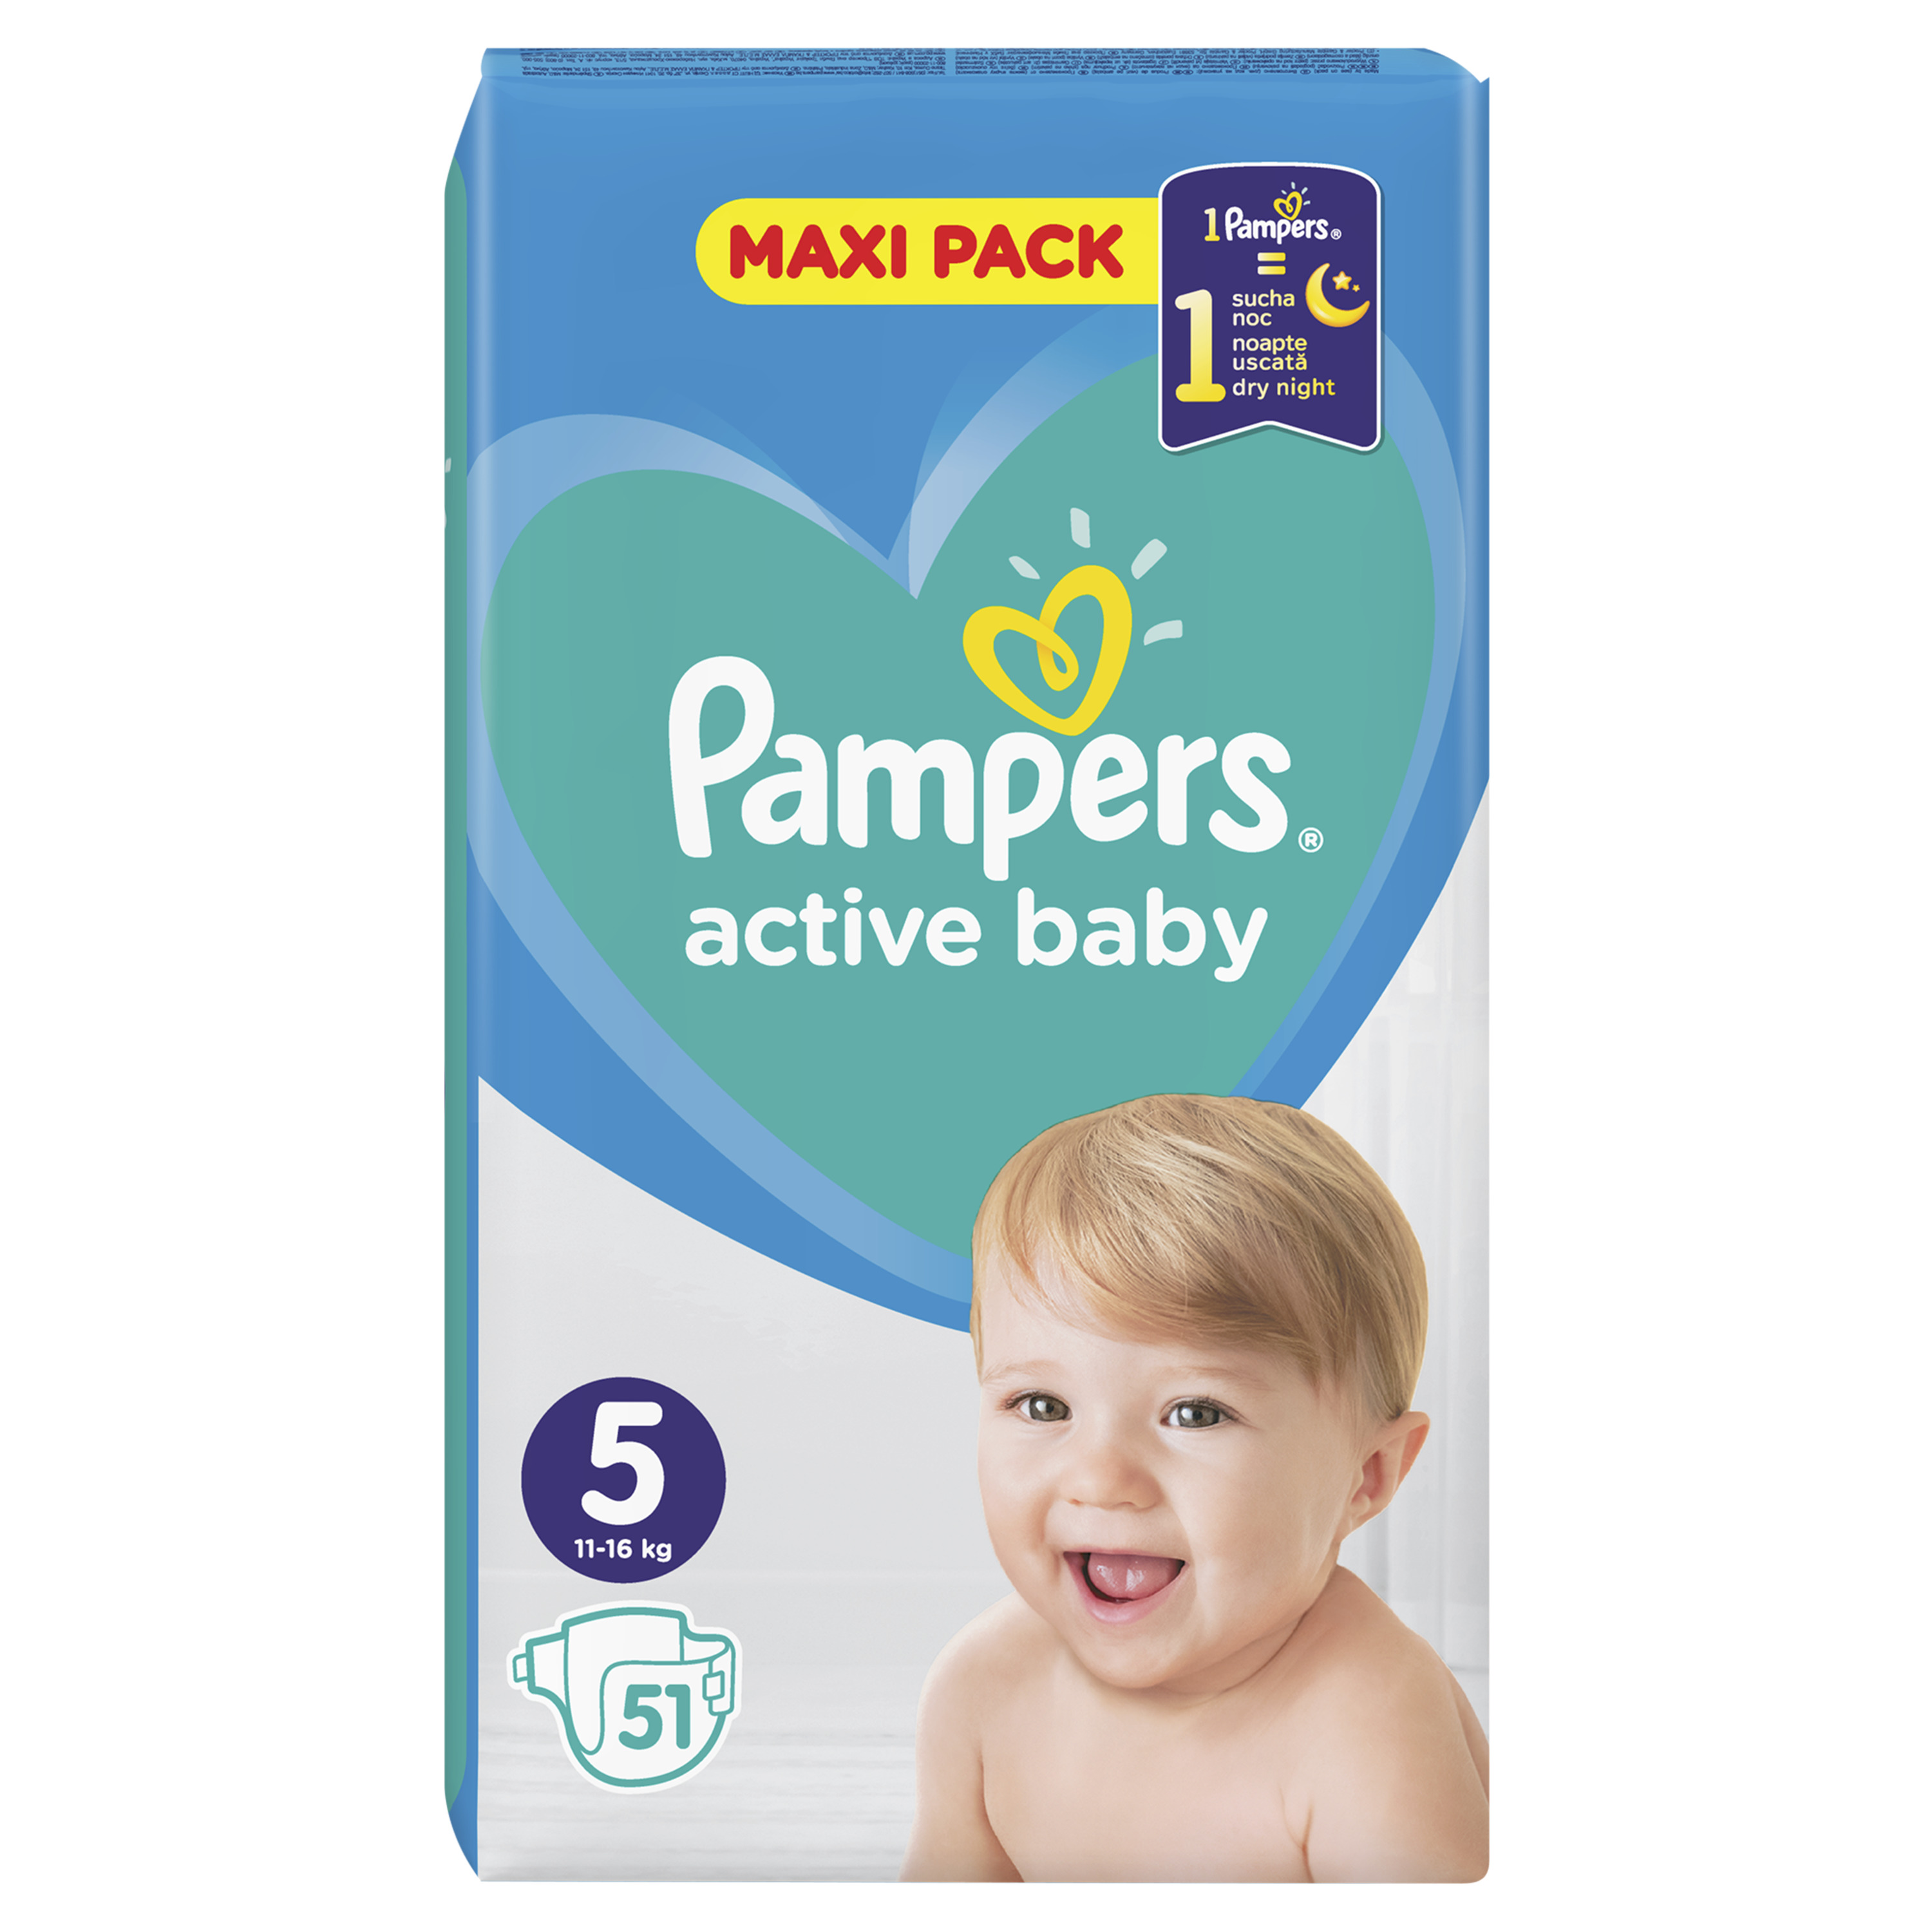 Pampers Πάνες Active Baby Maxi Pack (51τεμ) Νο5 (11-16kg)